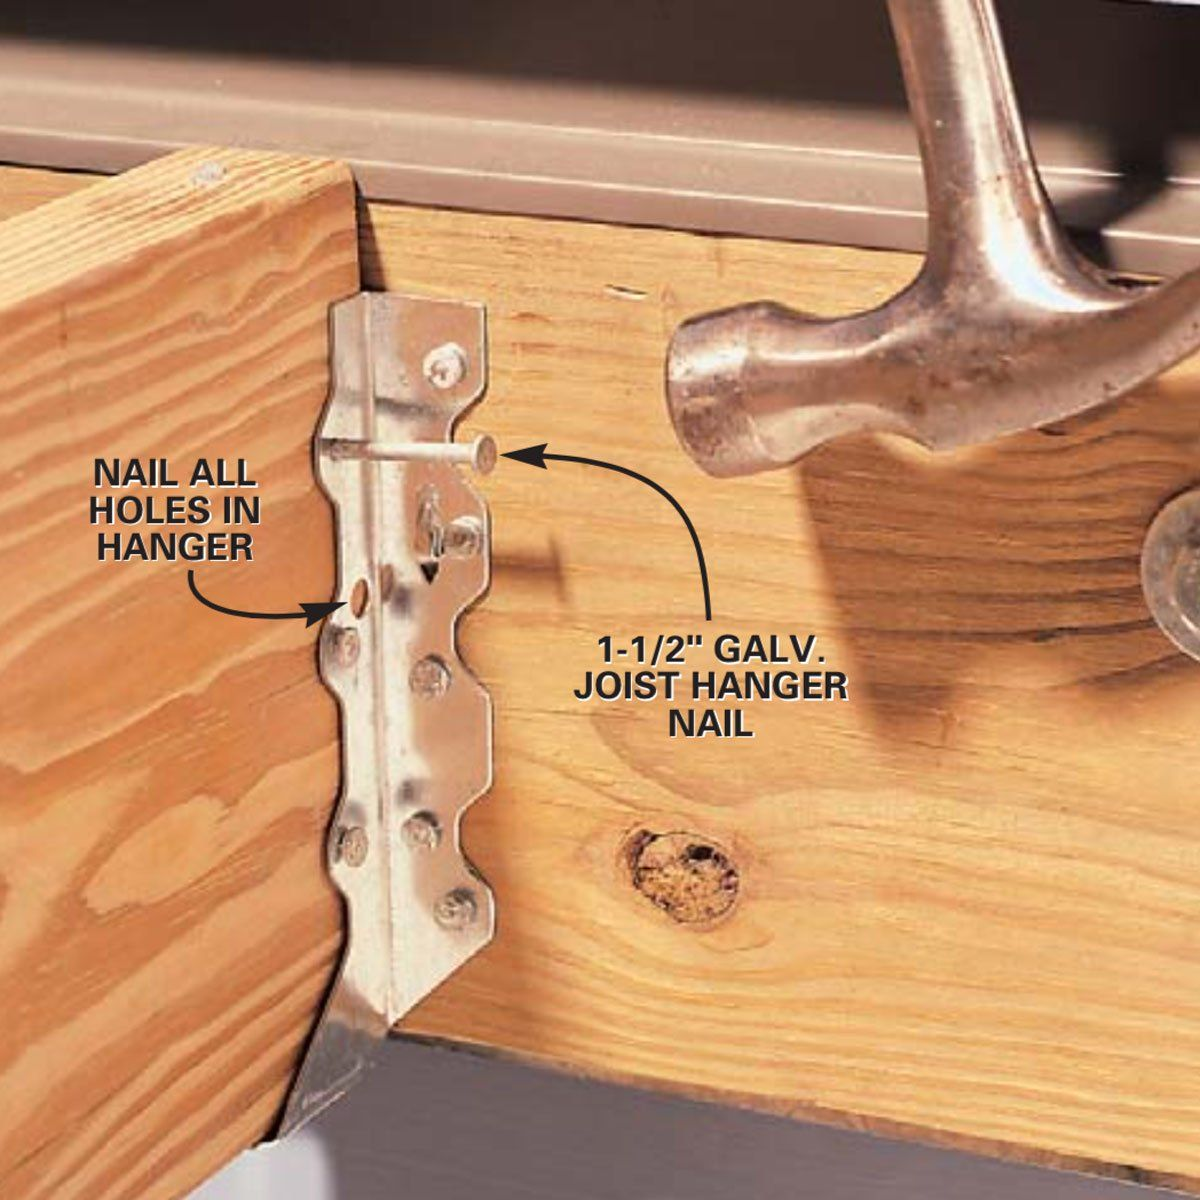 How To Install Joist Hangers The Correct Way